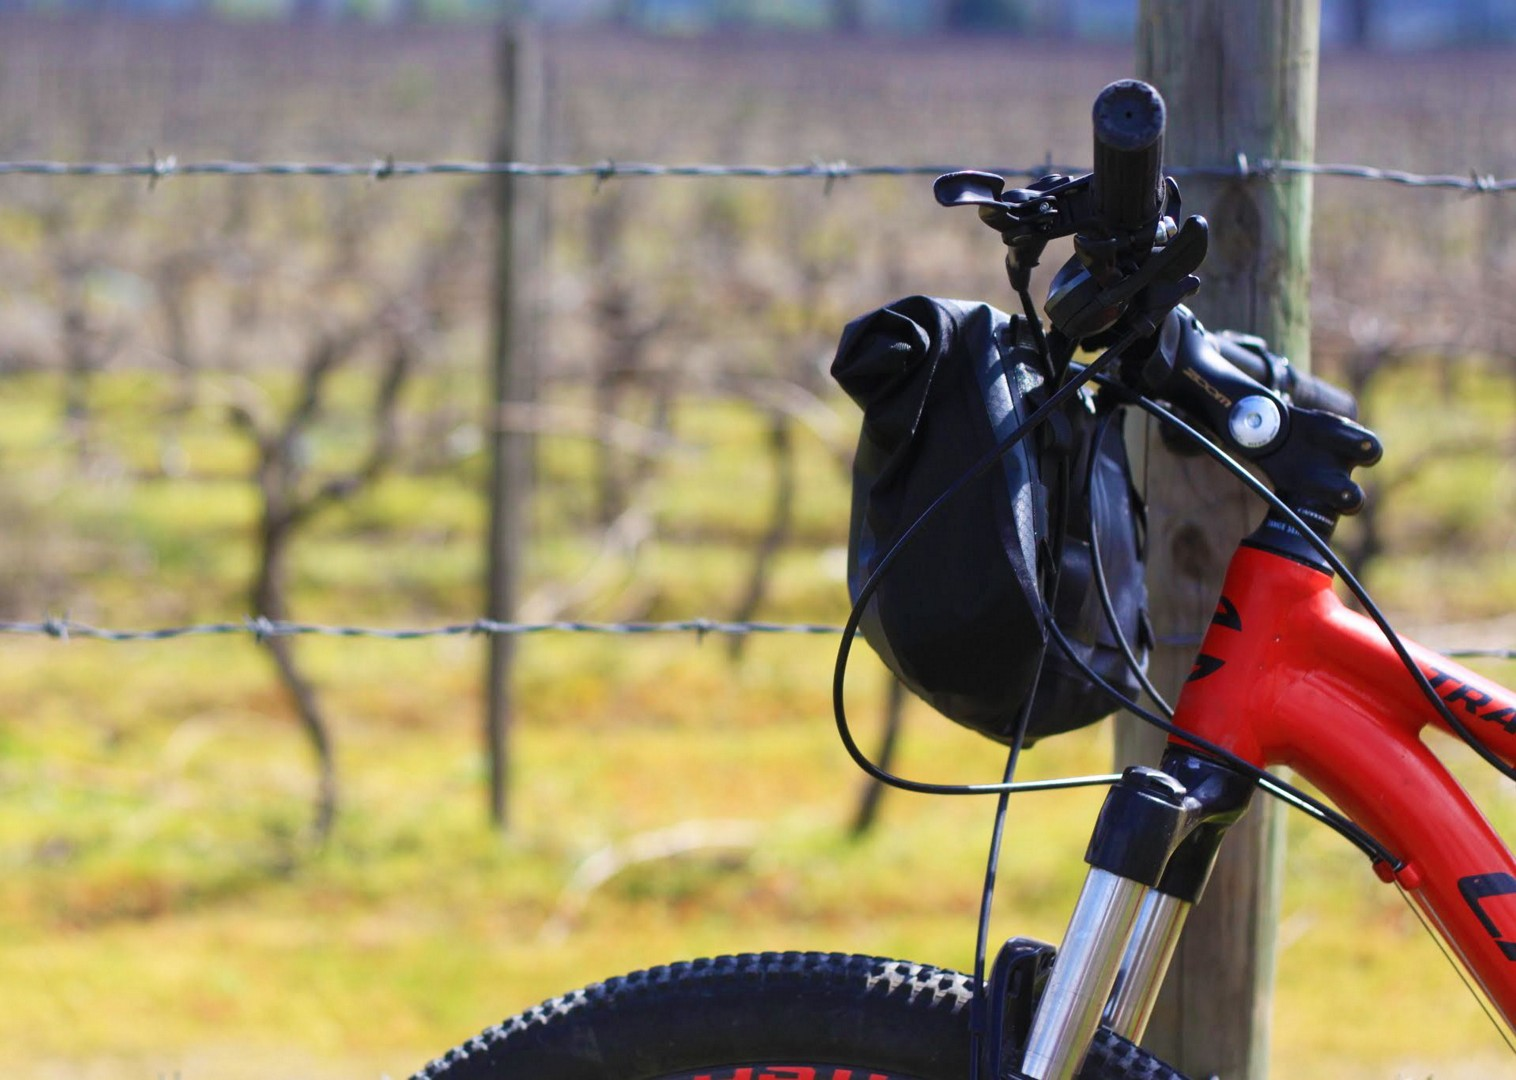 IMG_9406.jpg - Chile - Wine Country - Cycling Adventures